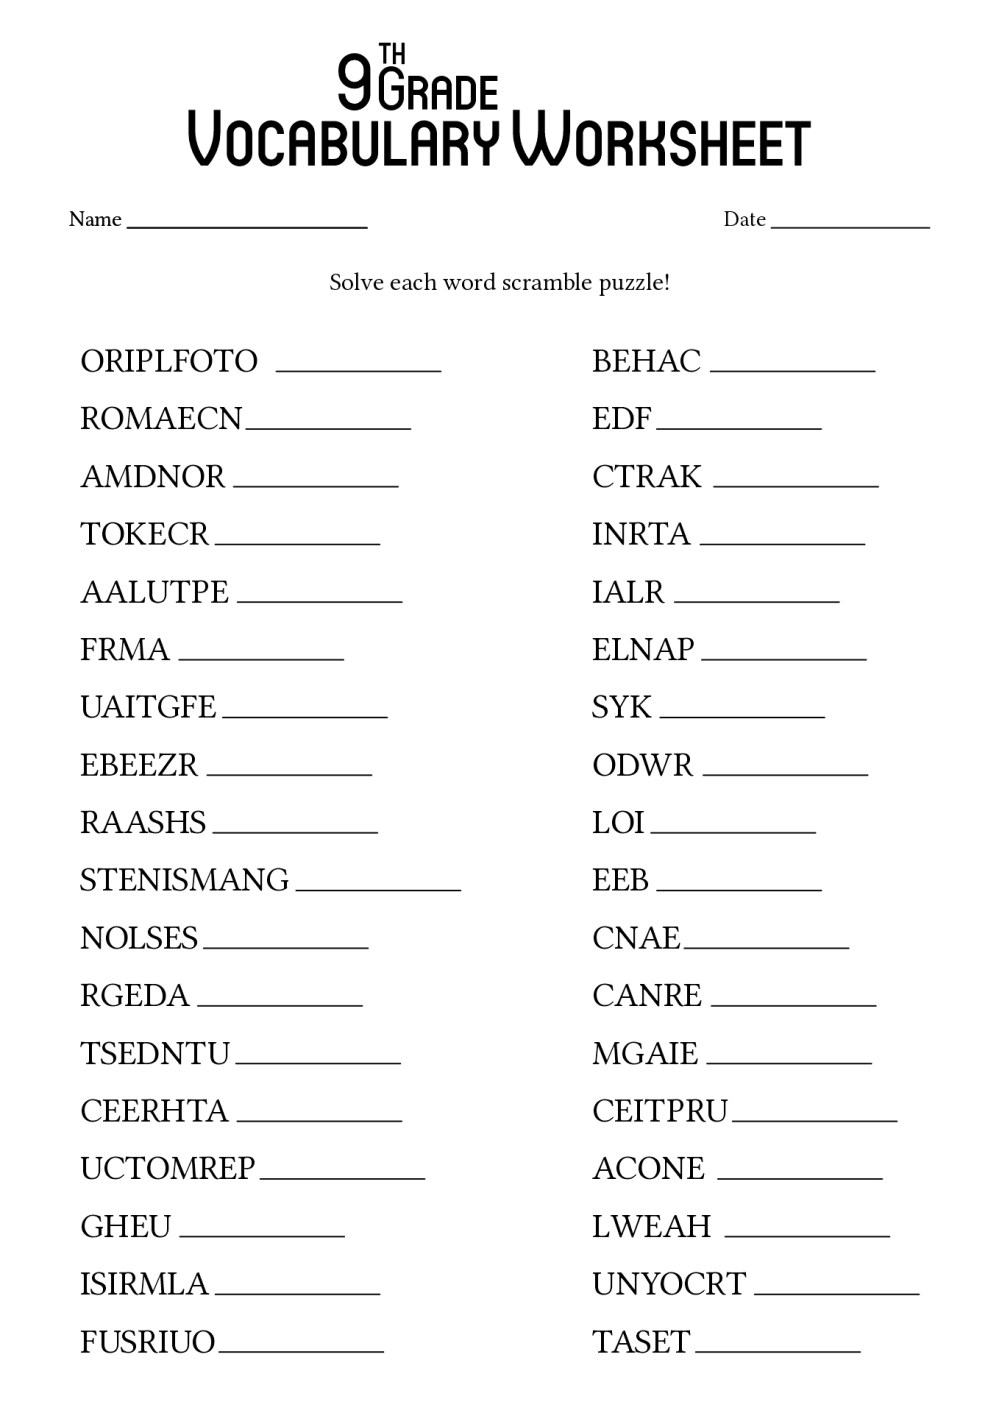 medium resolution of 9th Grade Map Worksheet   Printable Worksheets and Activities for Teachers